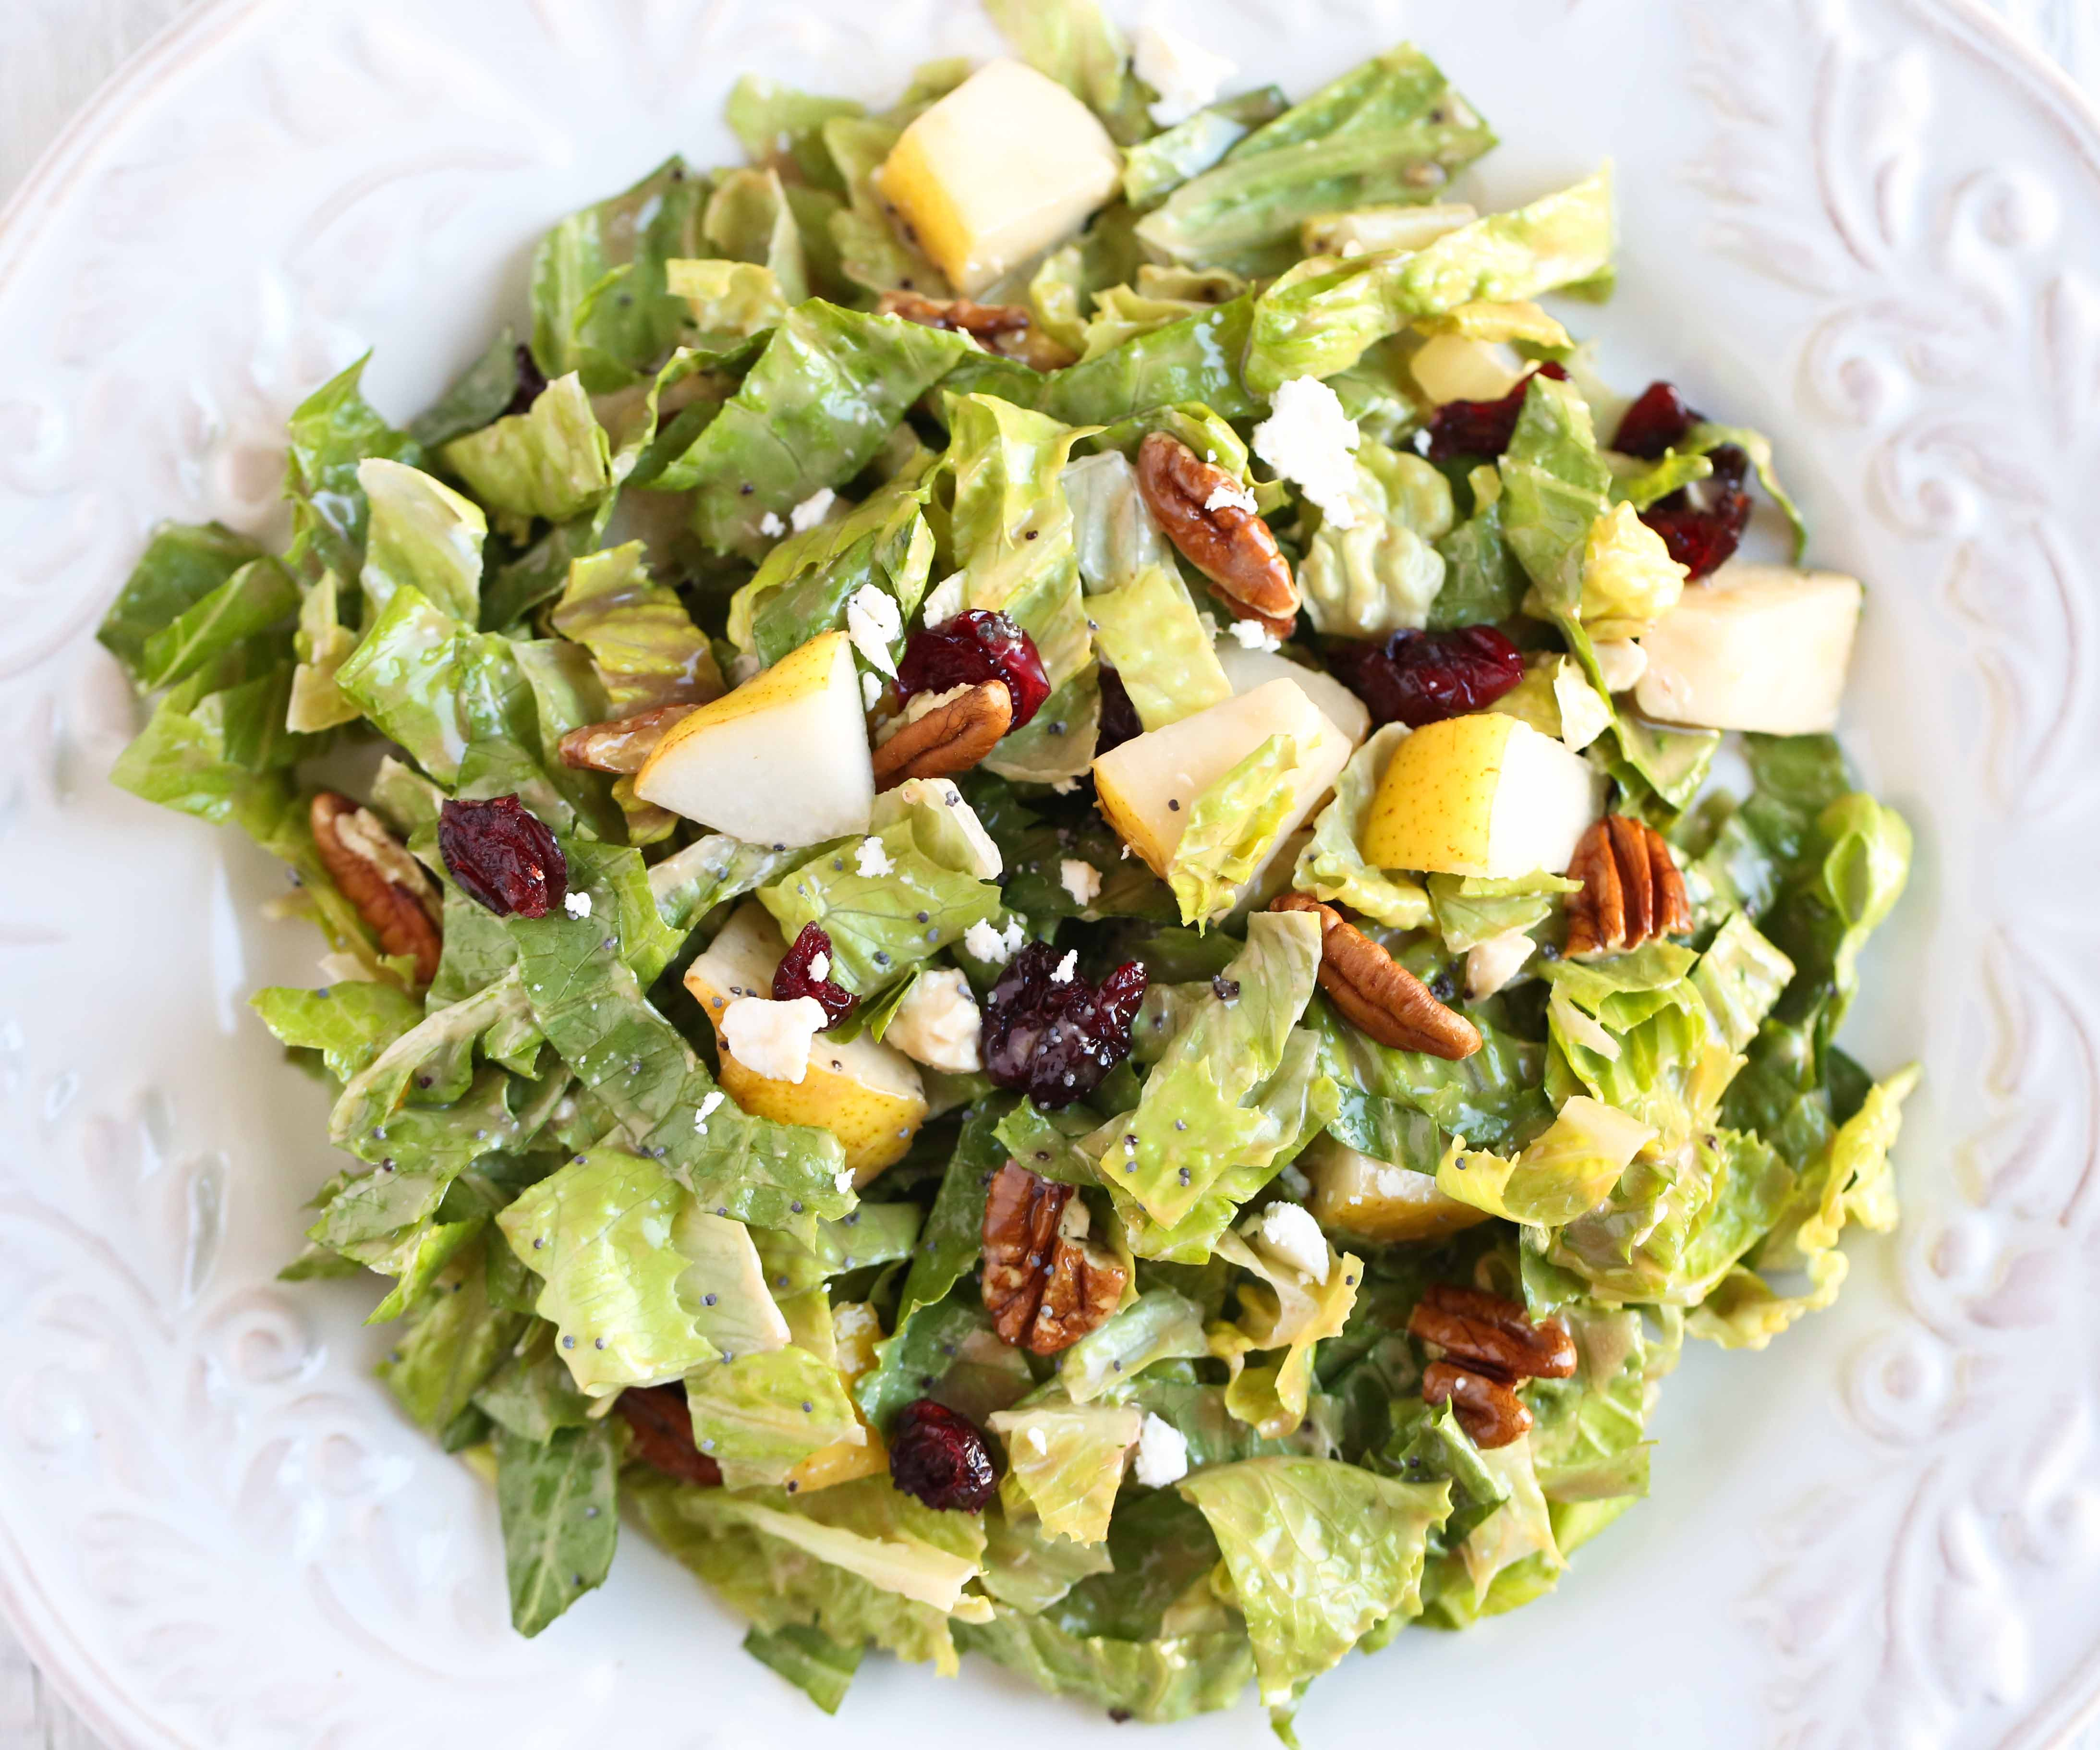 Autumn Salad with Creamy Balsamic Dressing